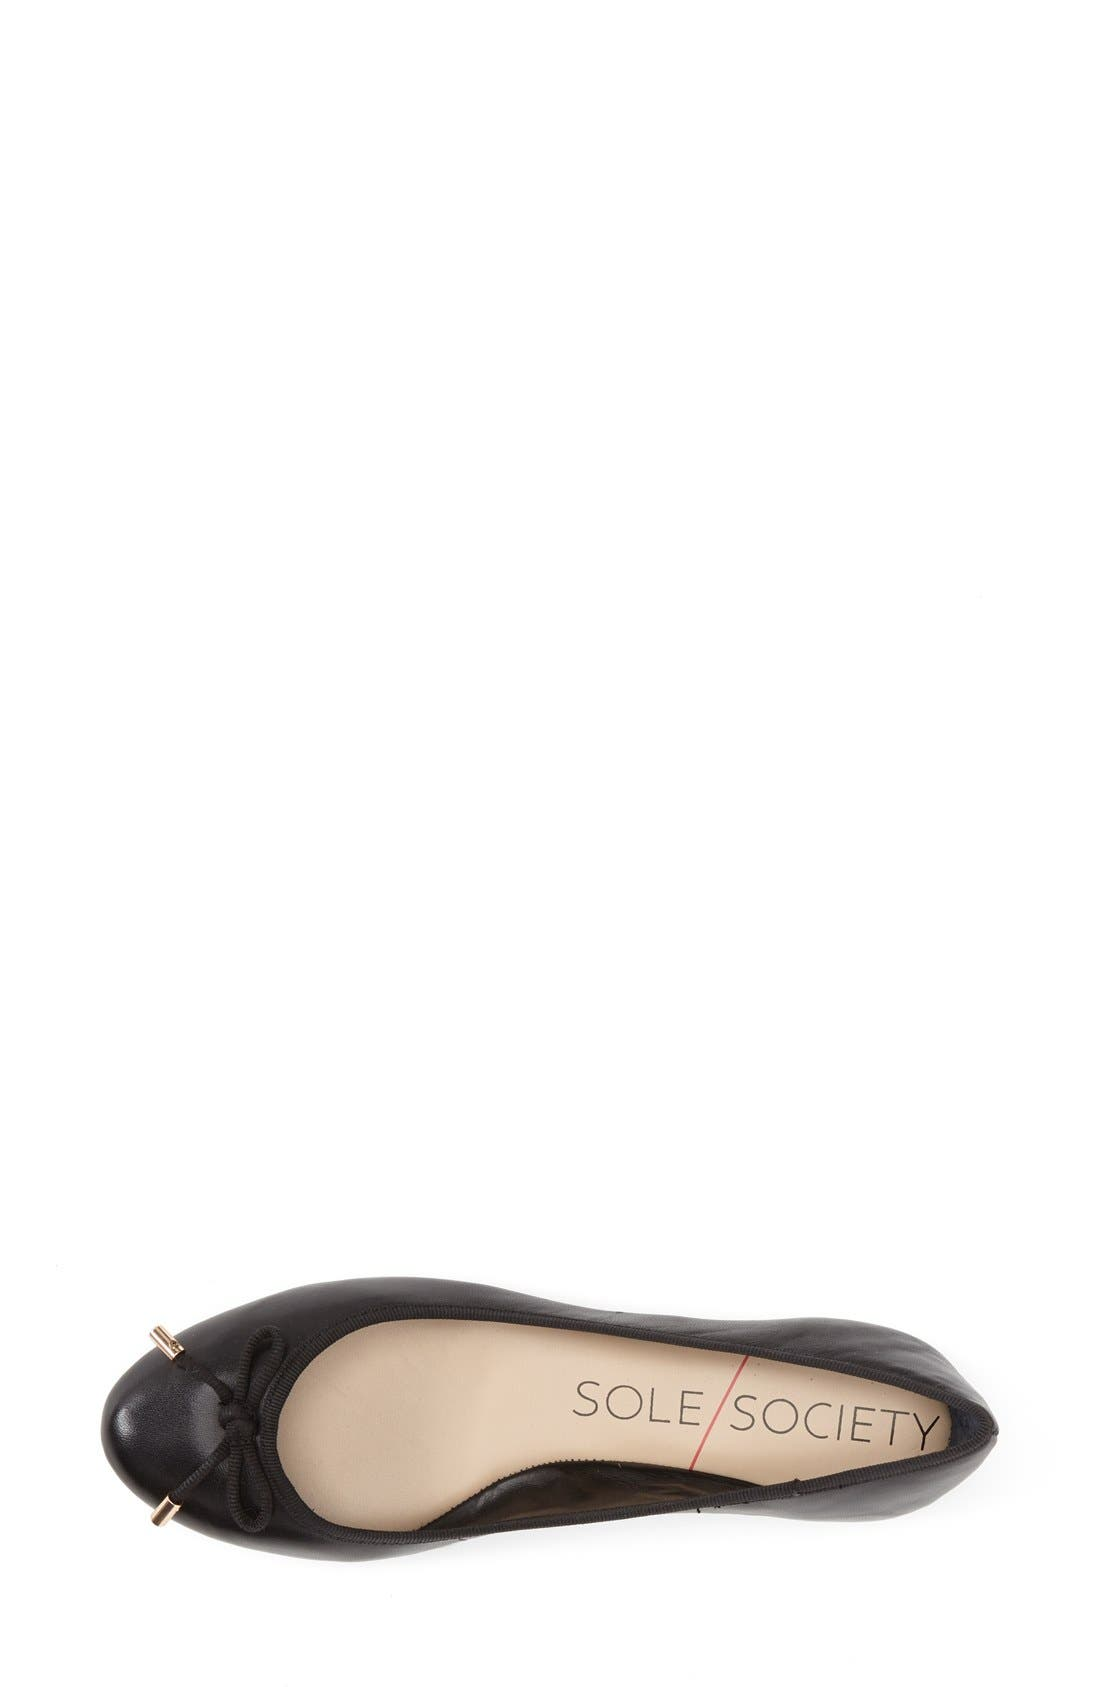 Alternate Image 3  - Sole Society 'Natalie' Leather Ballet Flat (Women)